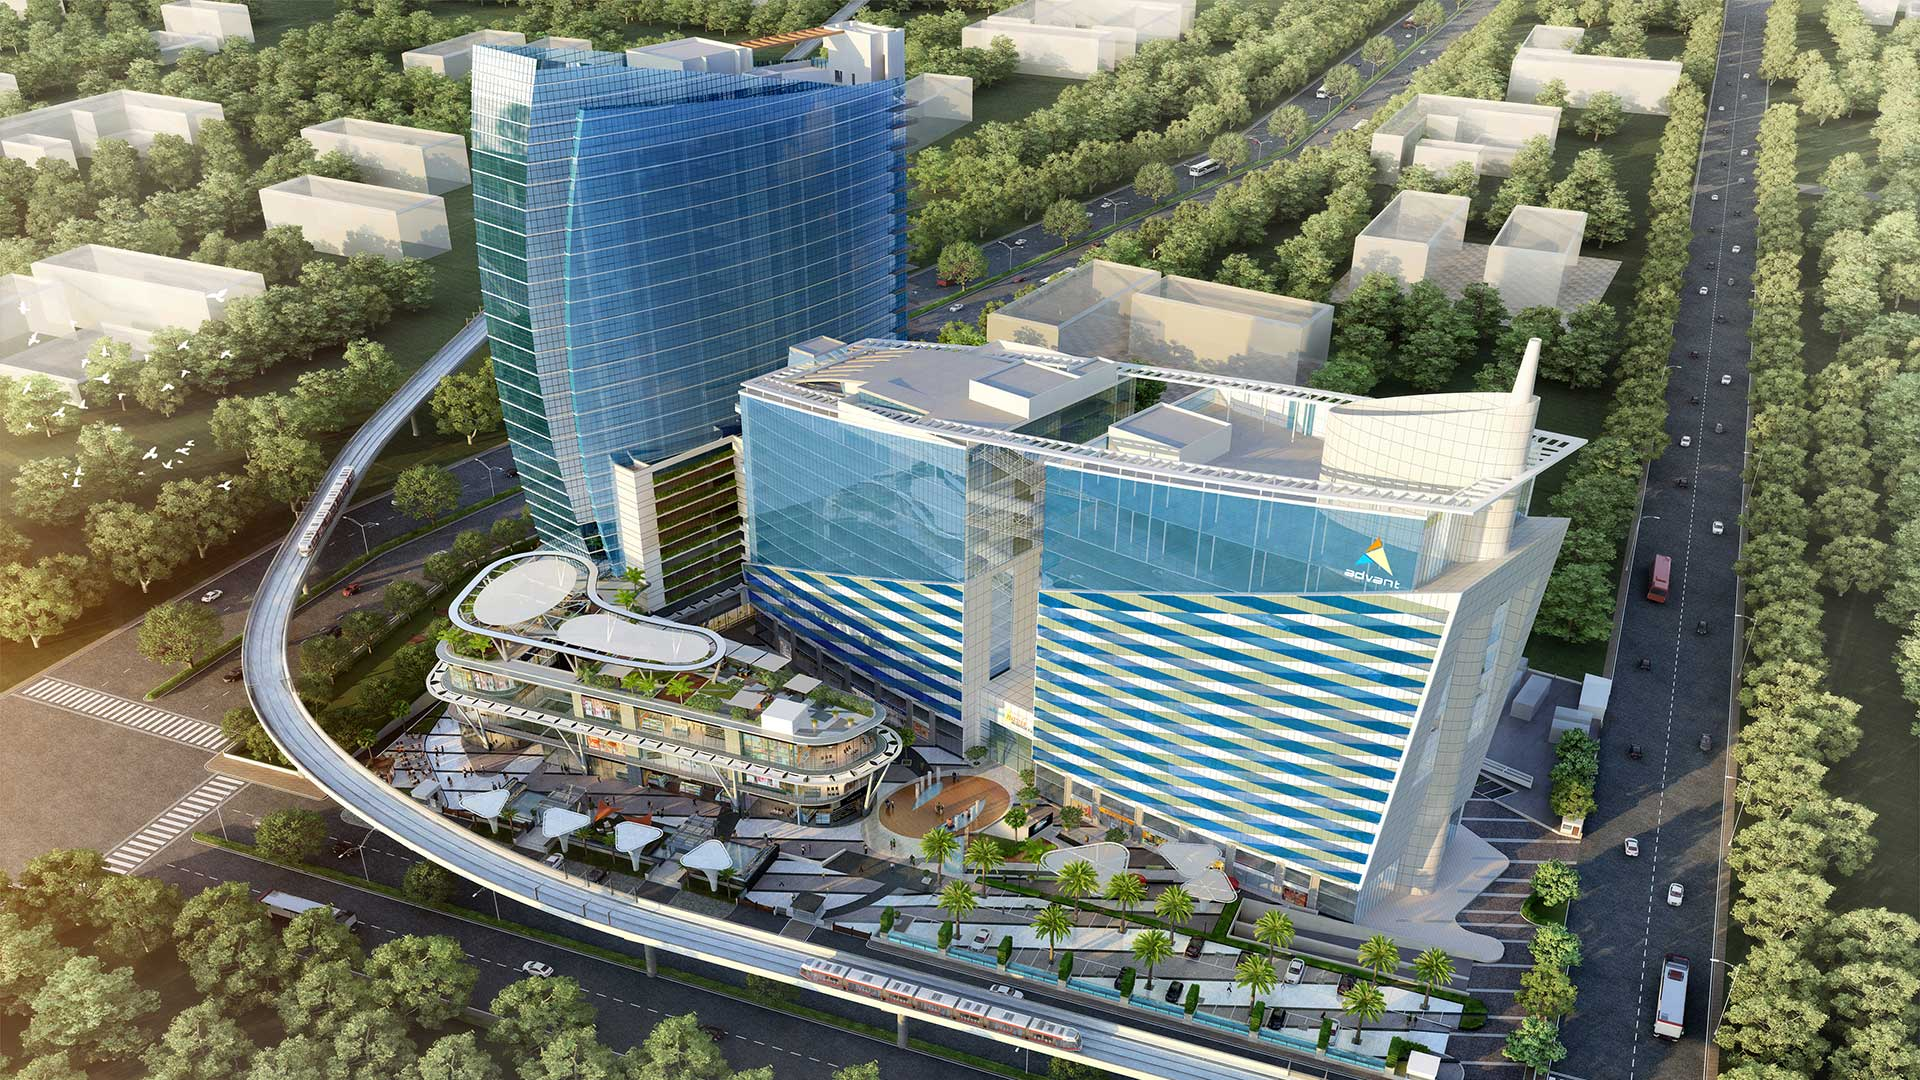 Commercial Renting Space Real Estate Agents In Noida Propliners Realty